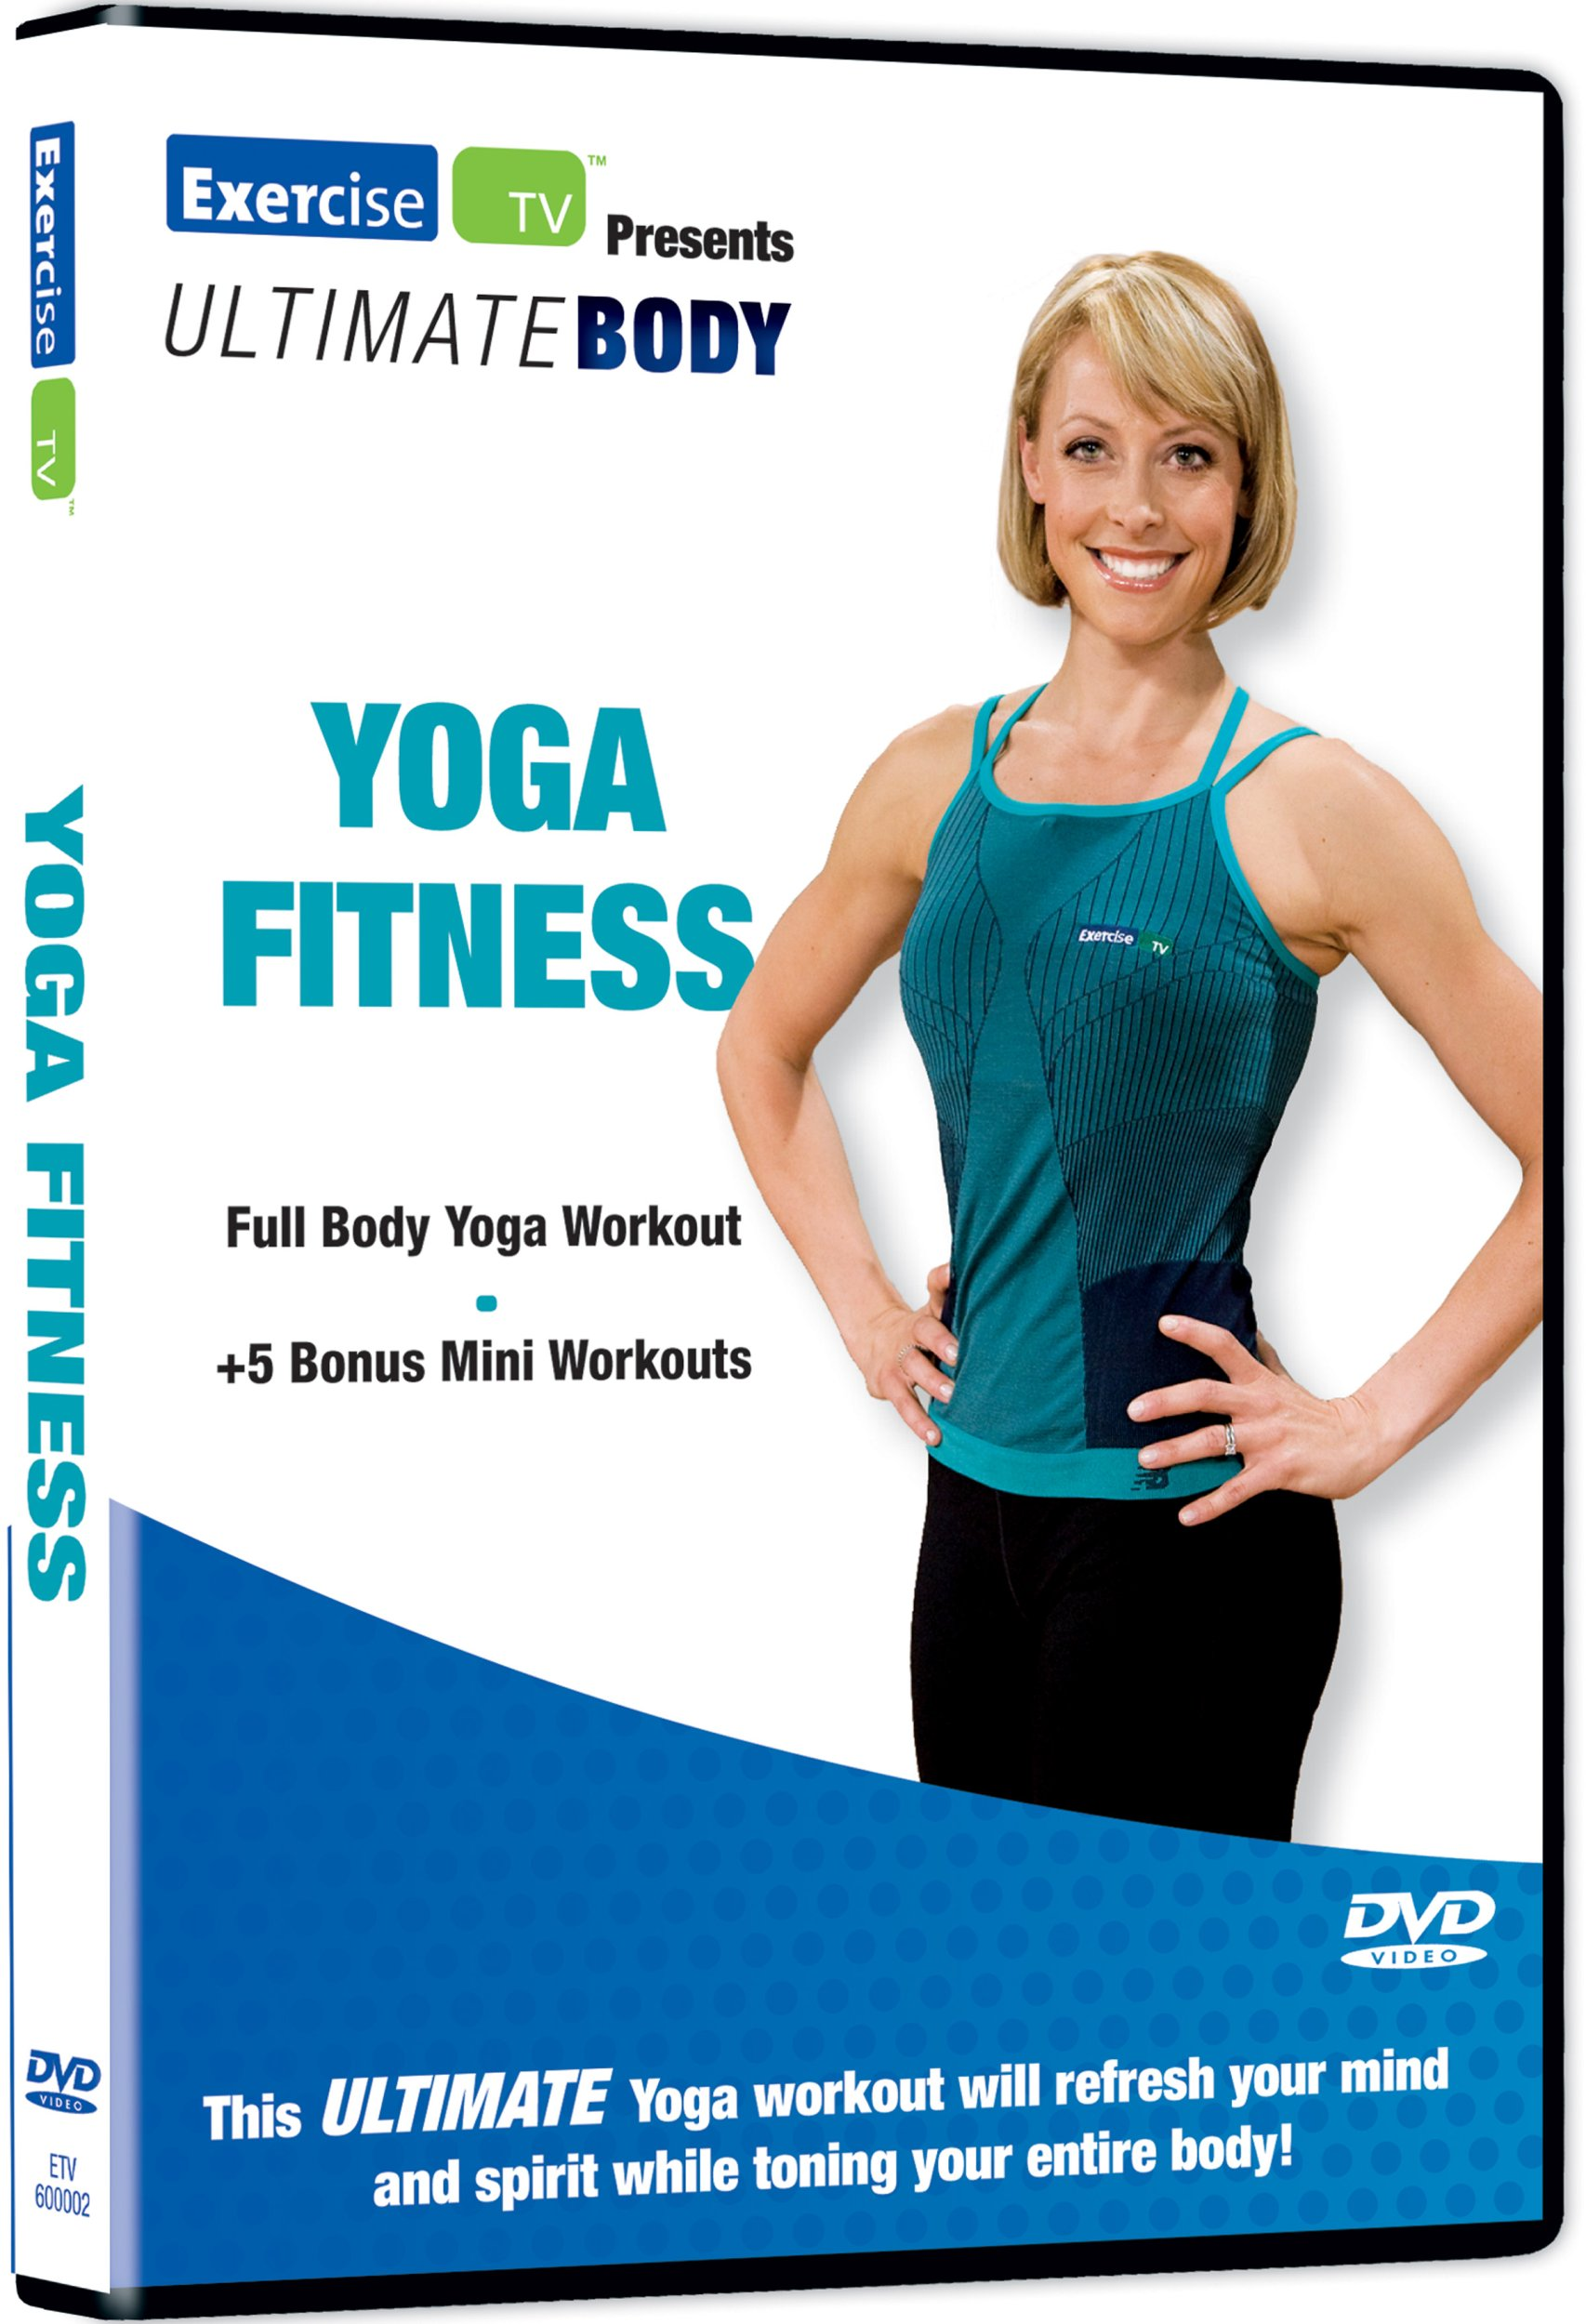 Ultimate Body: Yoga Fitness by elise